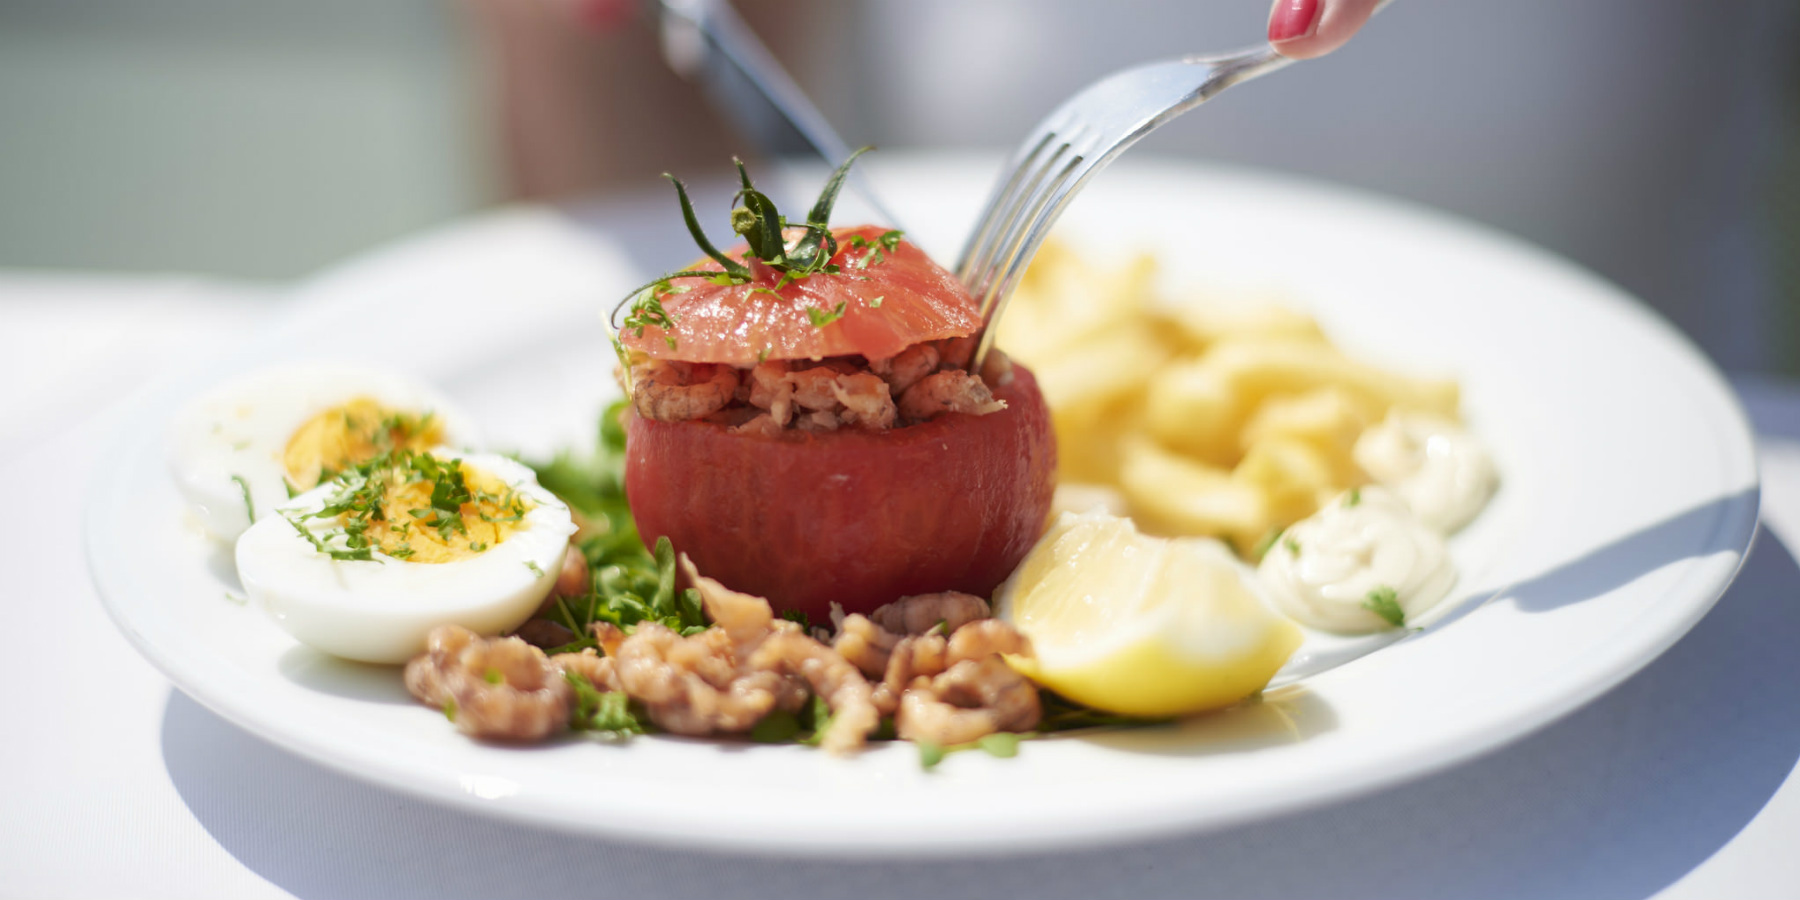 tomato filled with shrimps (c)Sofie Coreynen